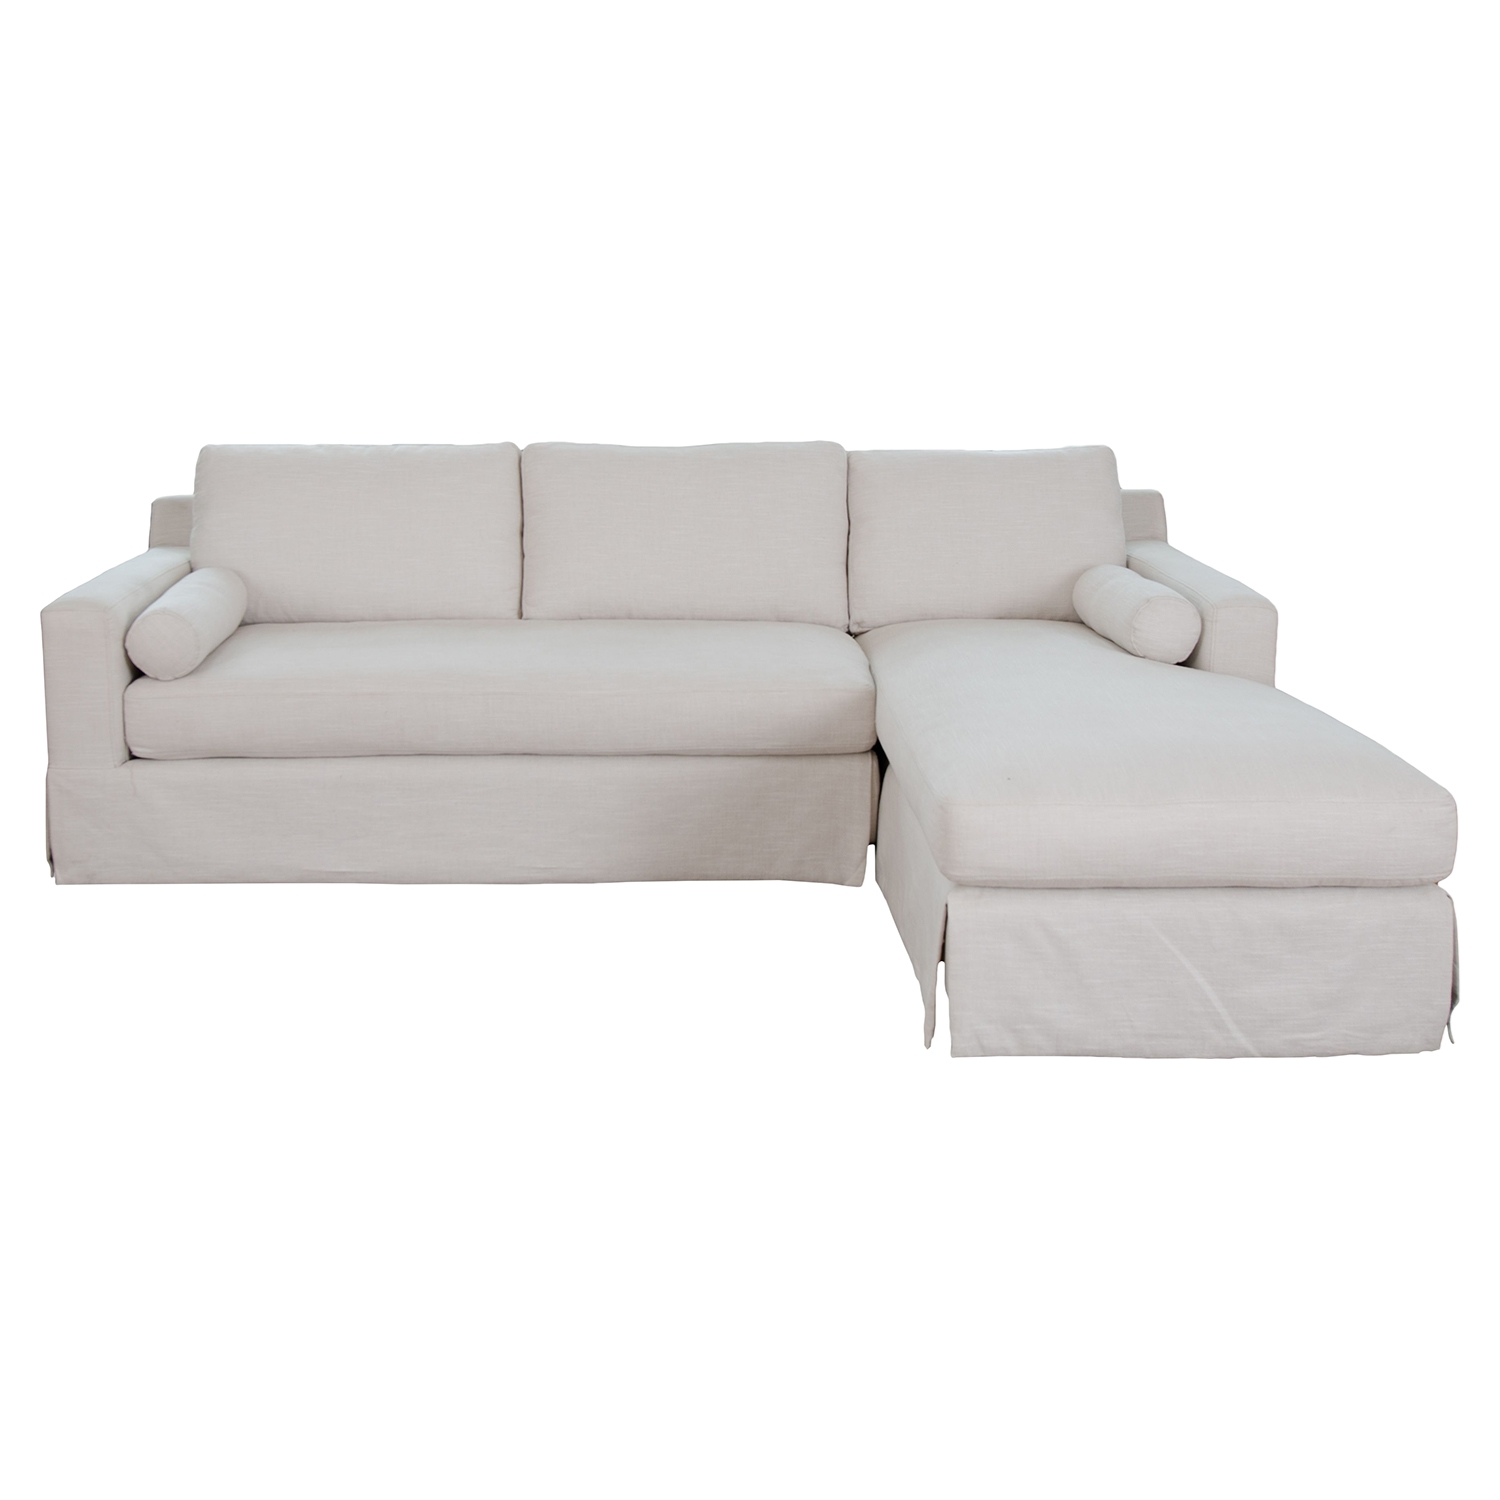 Haley Fabric Sectional - Seashell, Right Arm Facing Chaise - ELE-HAL-SEC-LAFL-RAFC-SEAS-7